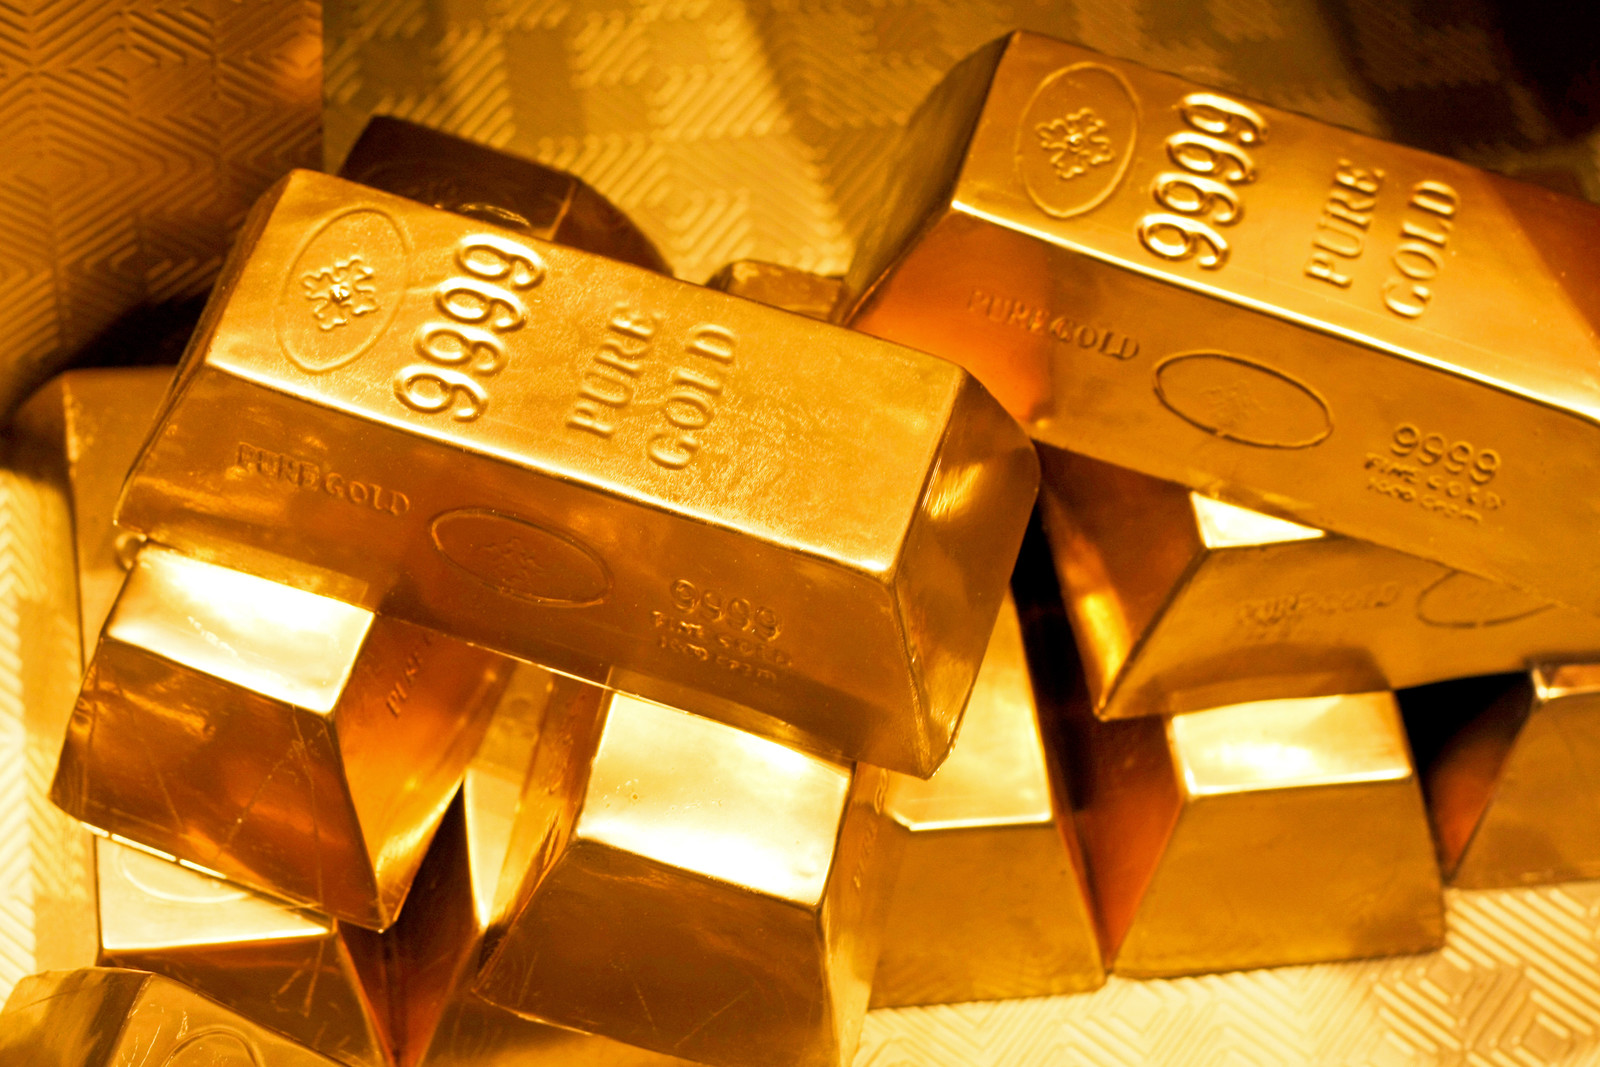 Photo of a pile of pure gold bars all stamped with 9999 pure gold